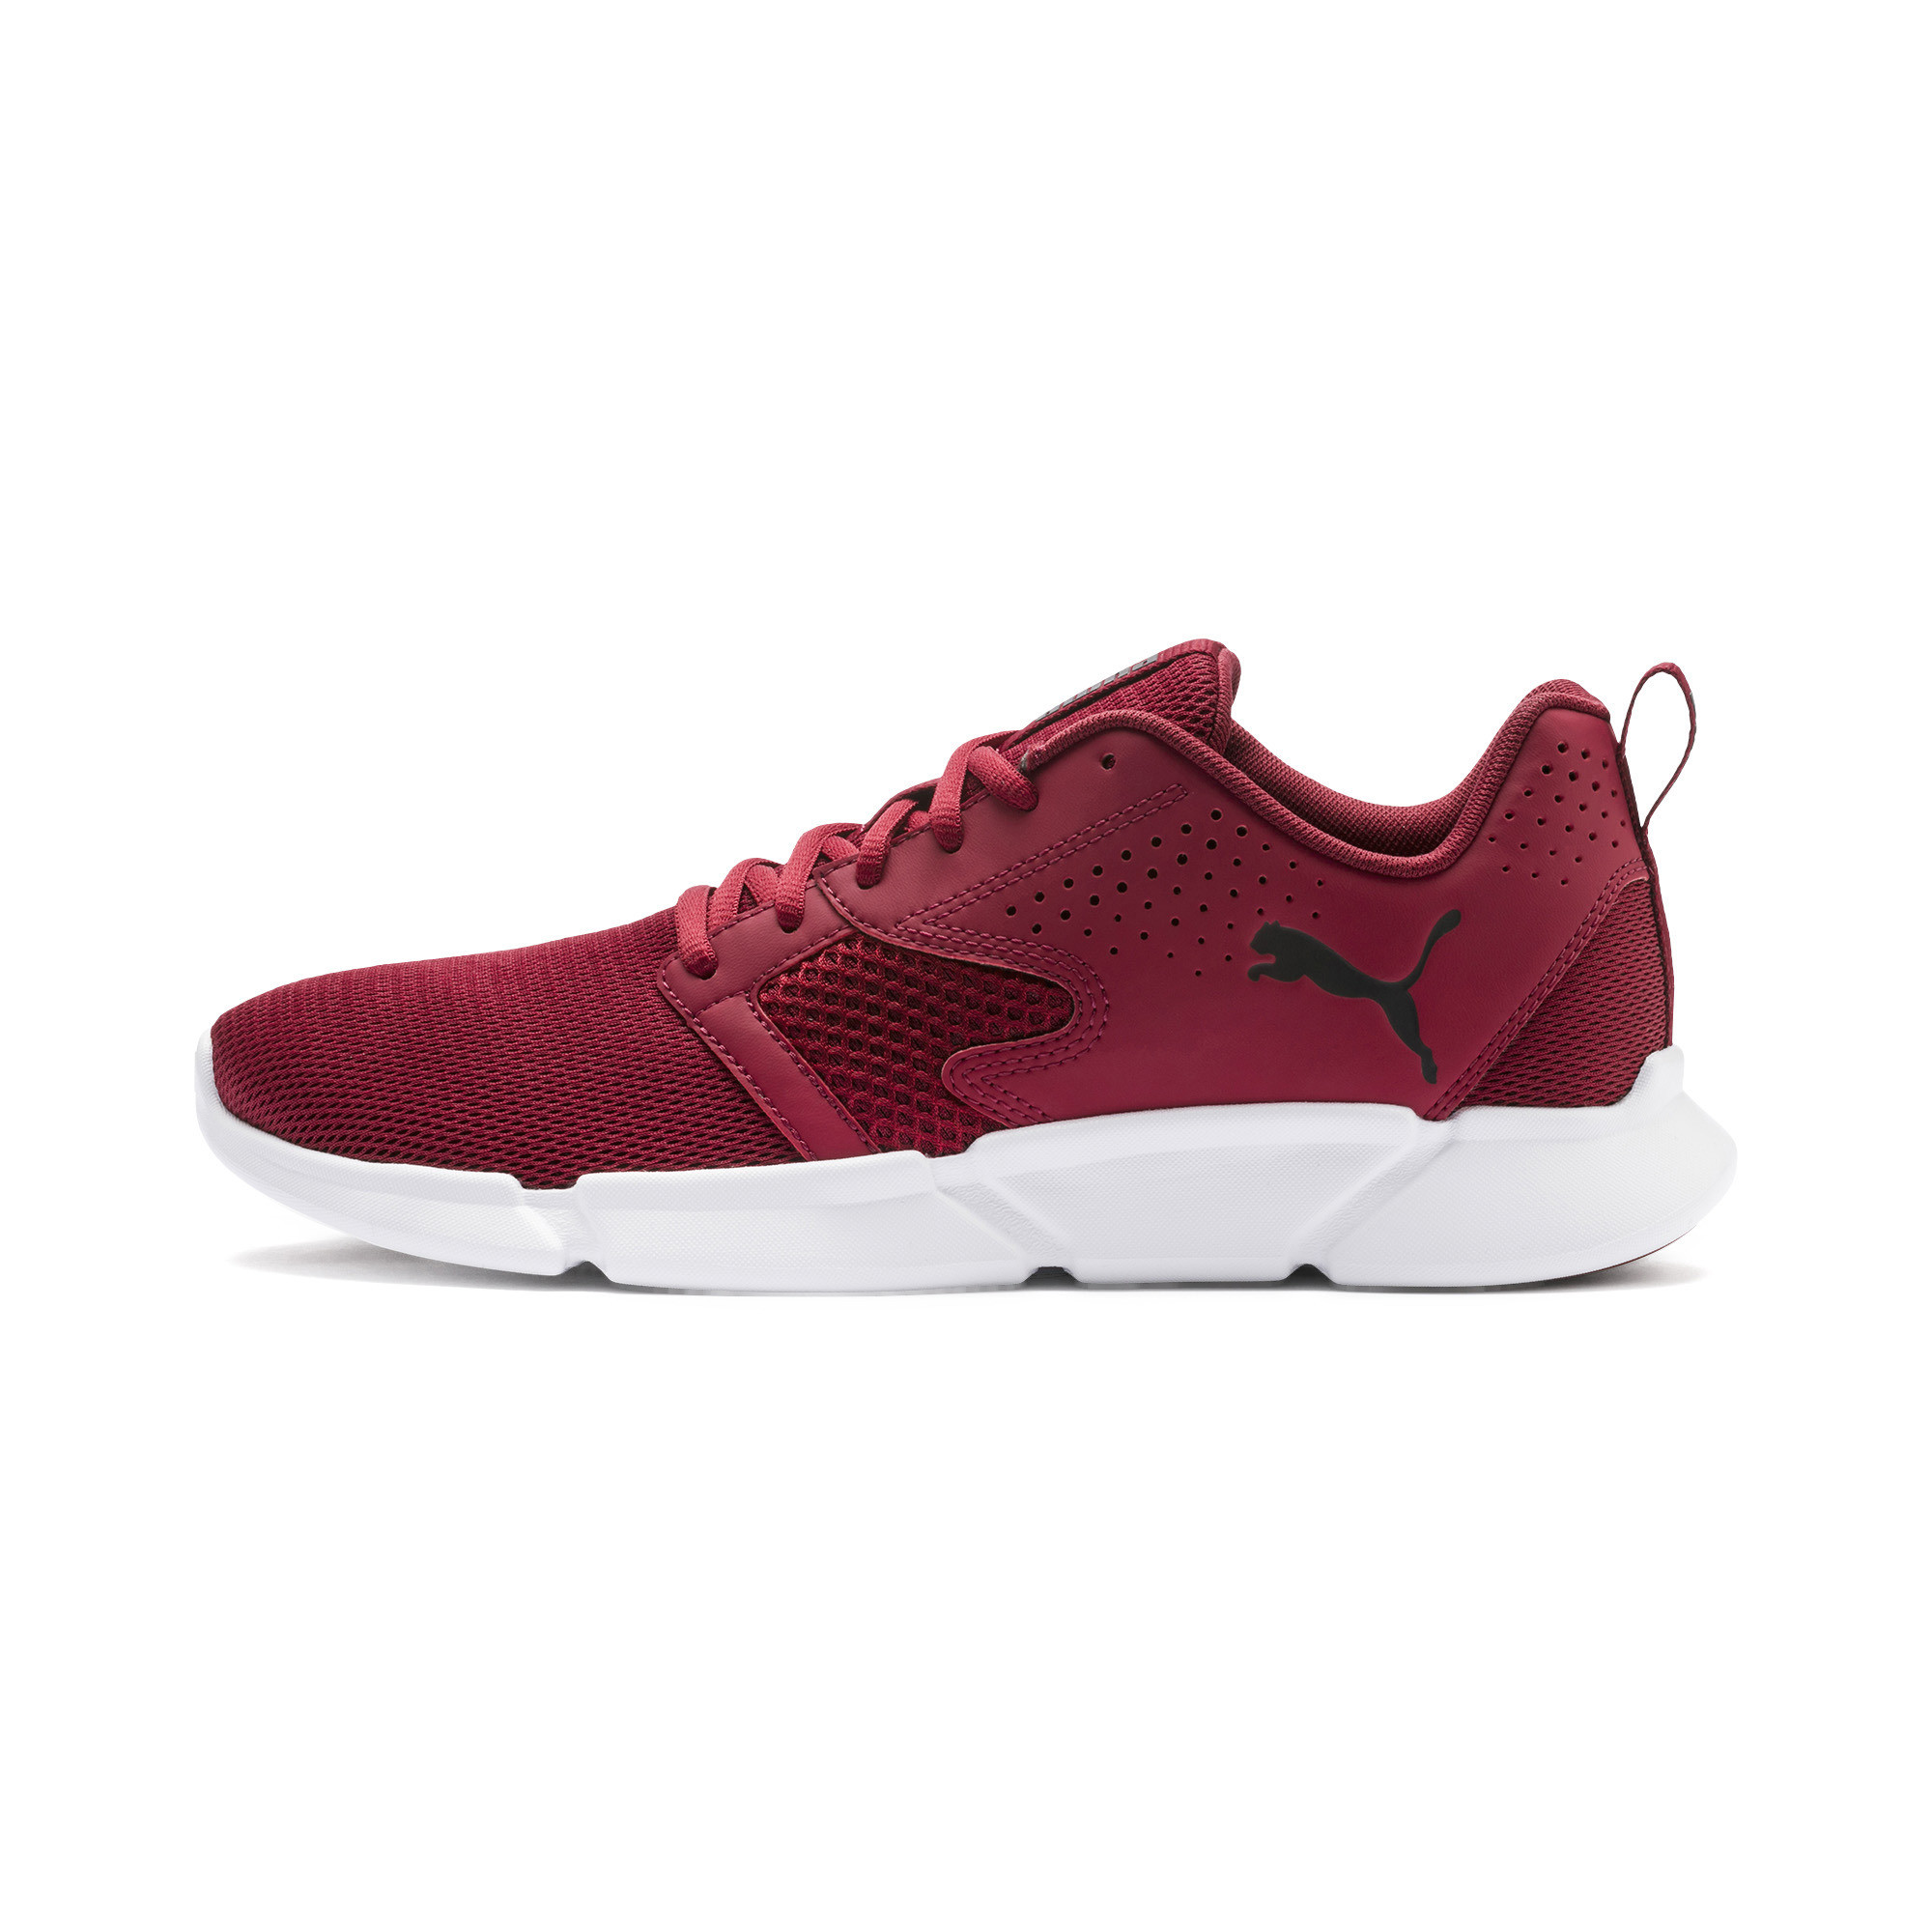 PUMA-INTERFLEX-Modern-Men-039-s-Sneakers-Unisex-Shoe-Running thumbnail 19